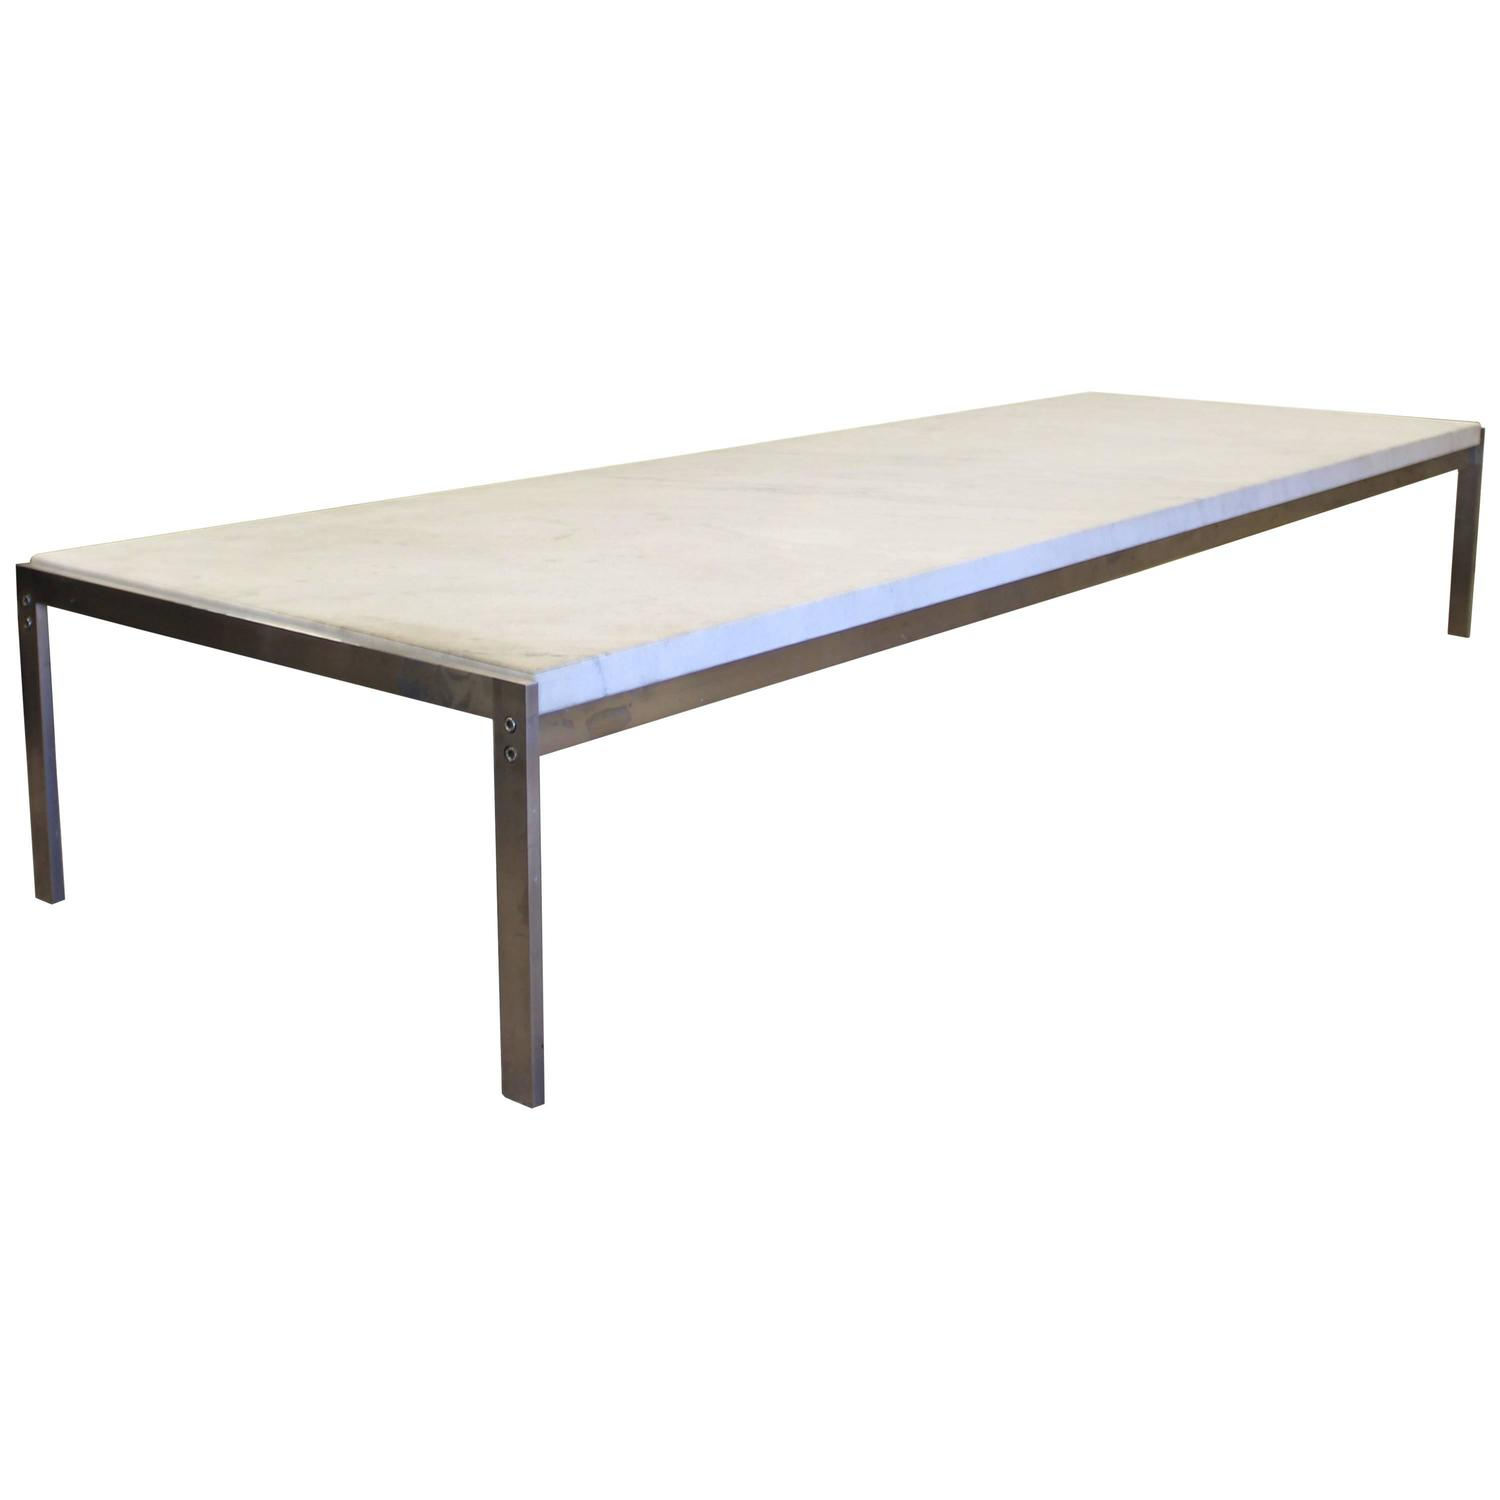 Brushed Gold White Marble Rectangular Coffee Table: Large PK-62 Marble And Brushed Steel Coffee Or Side Table